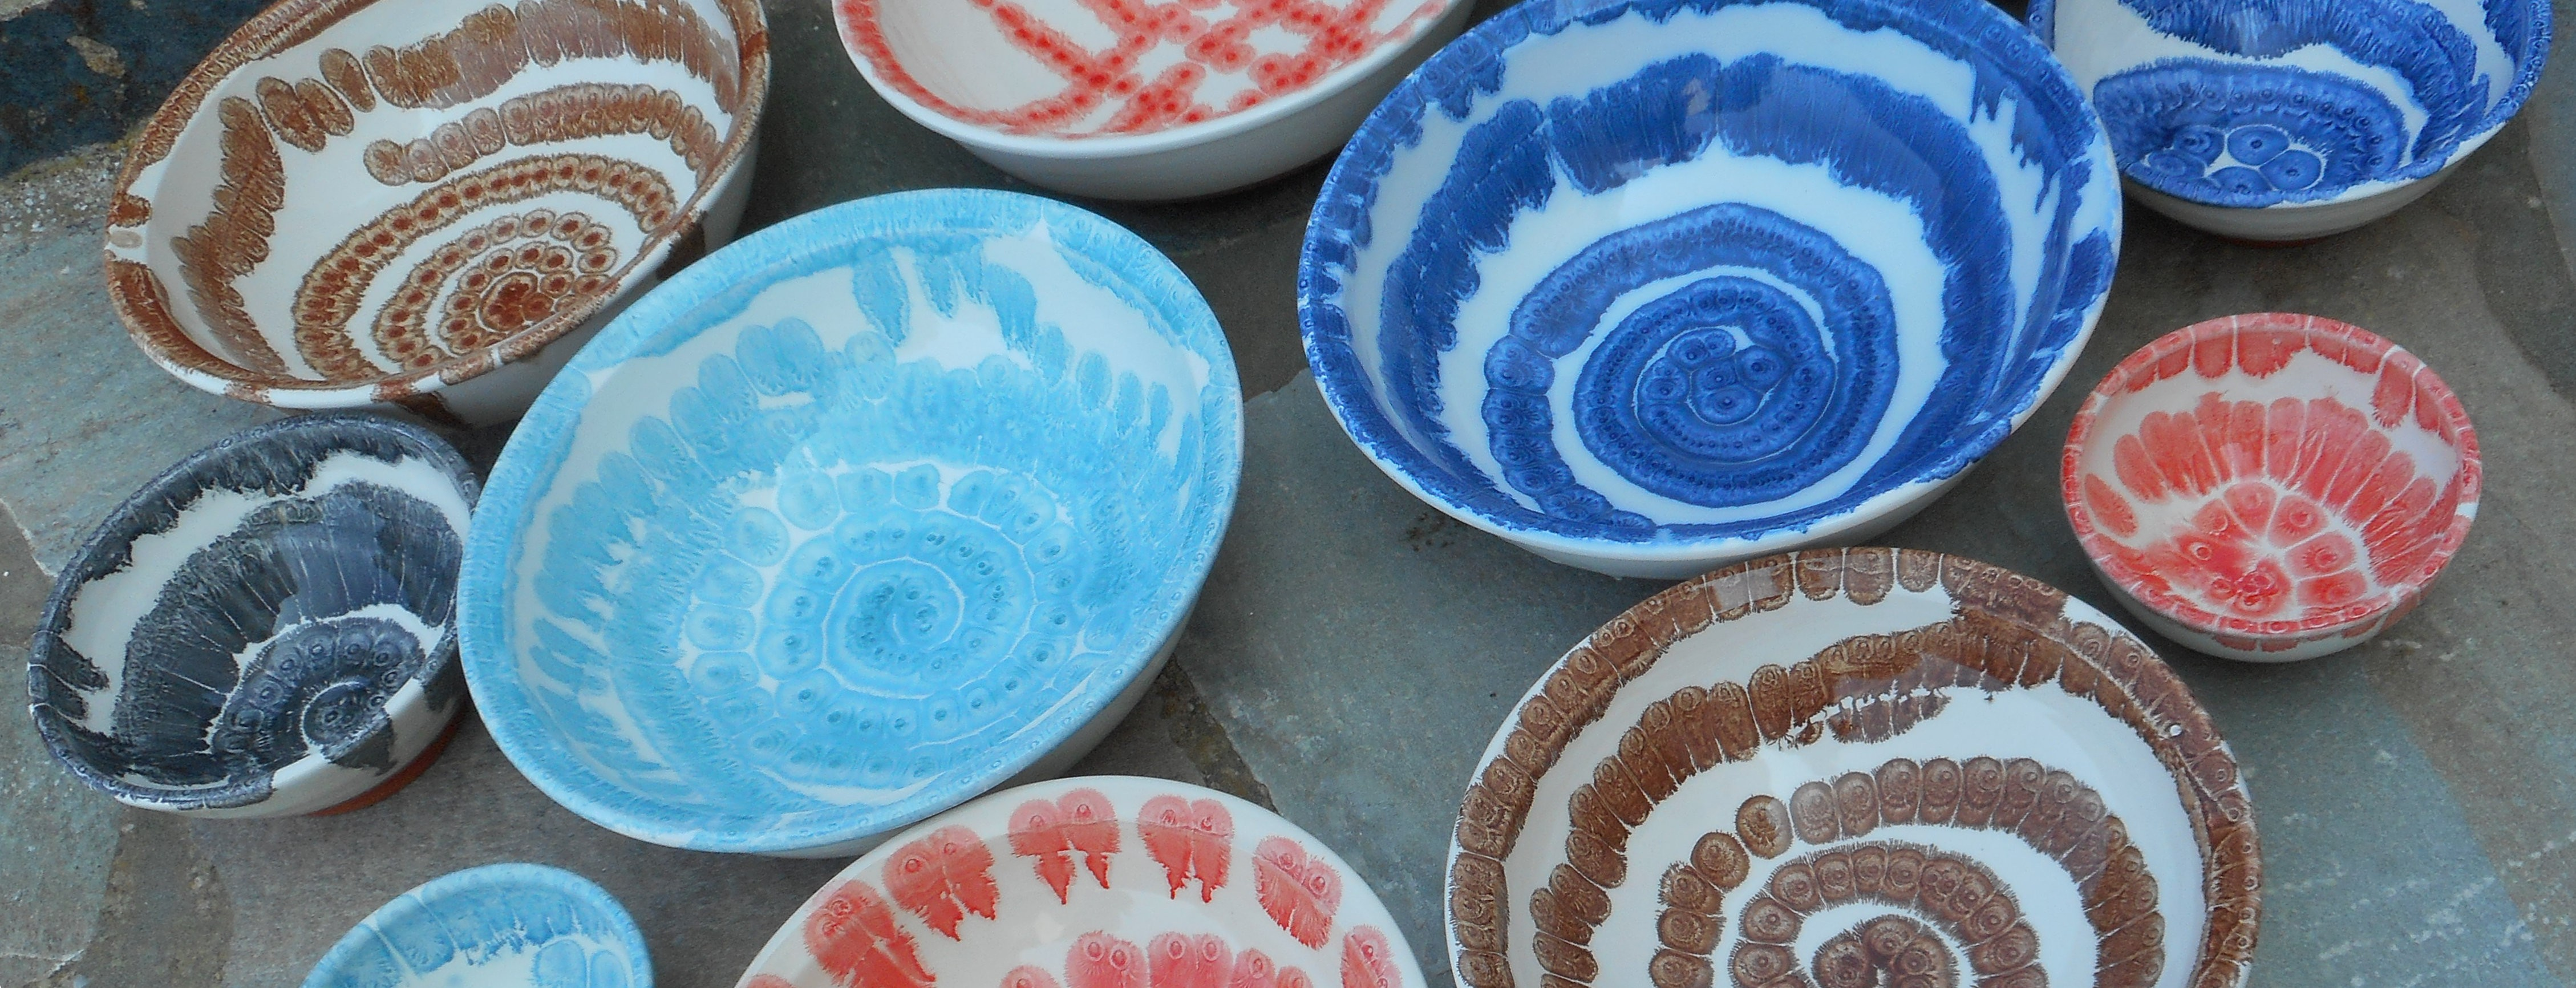 Bowls_and_other_ceramics